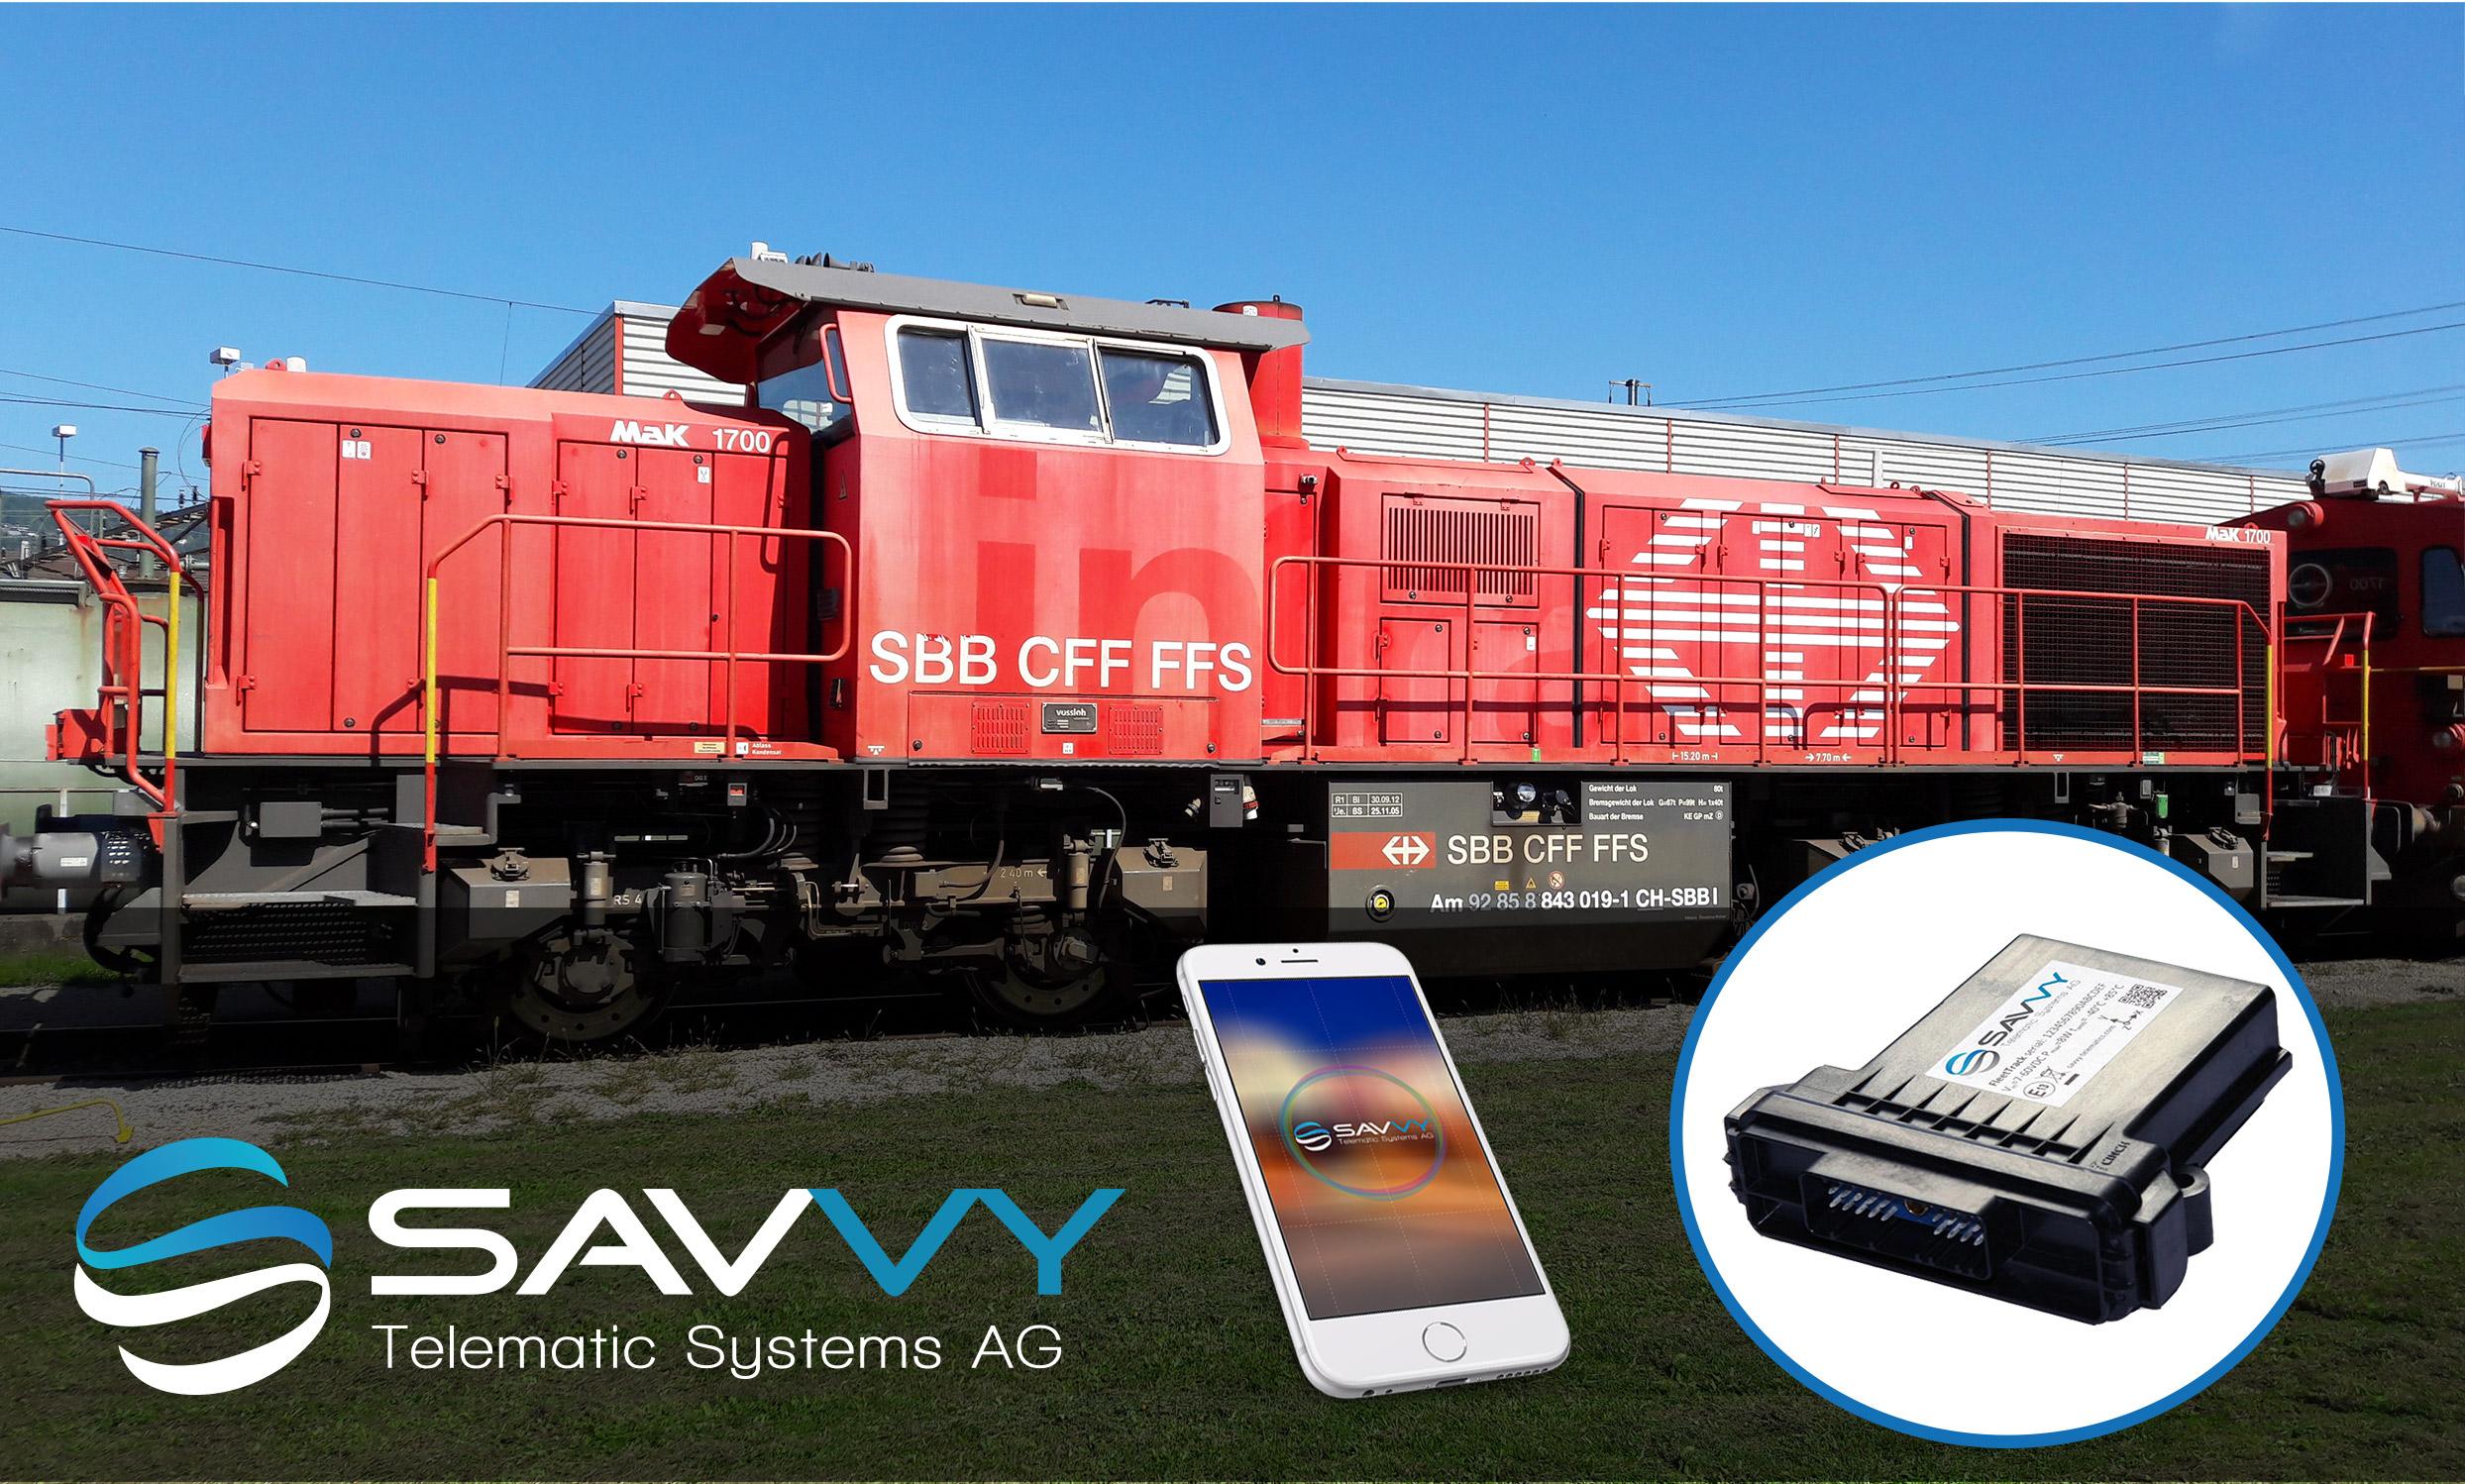 SAVVY Telematic Systems AG und SBB